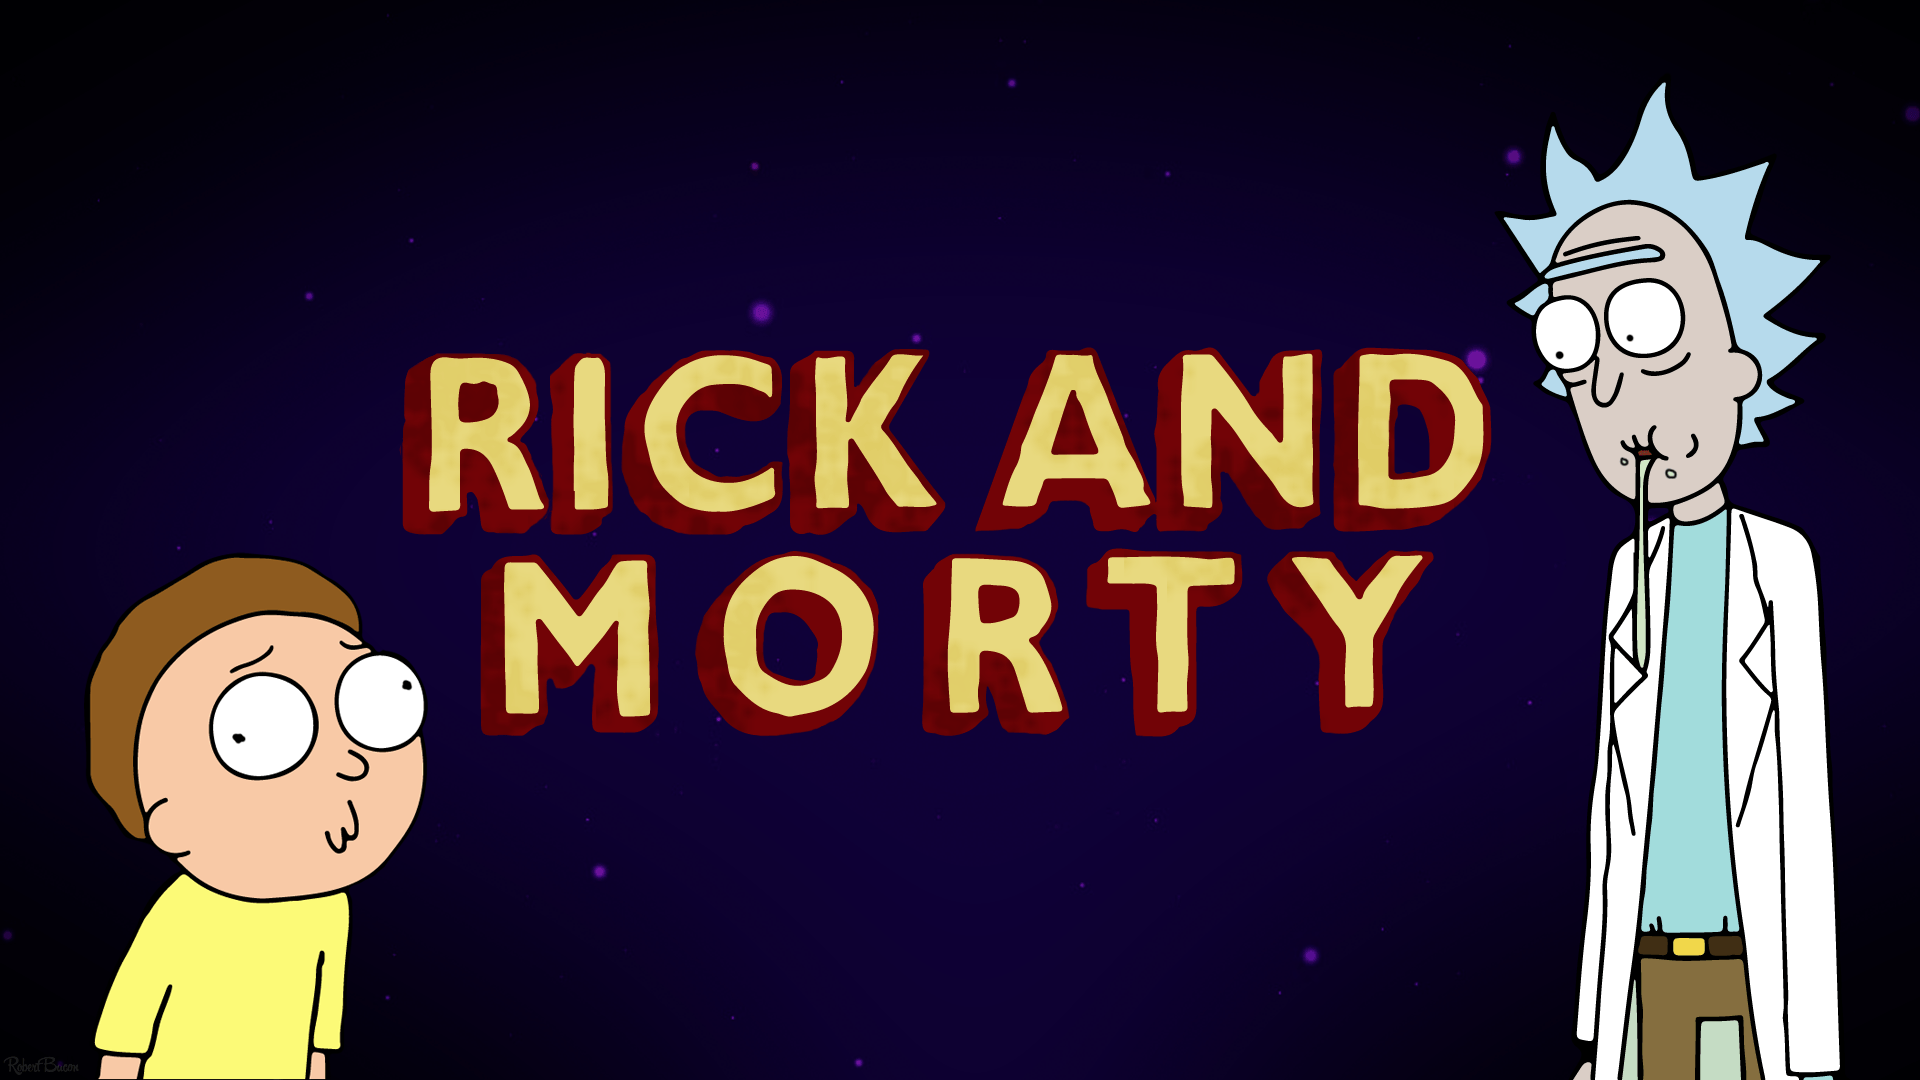 I made myself a Rick and Morty wallpaper. I thought I would share